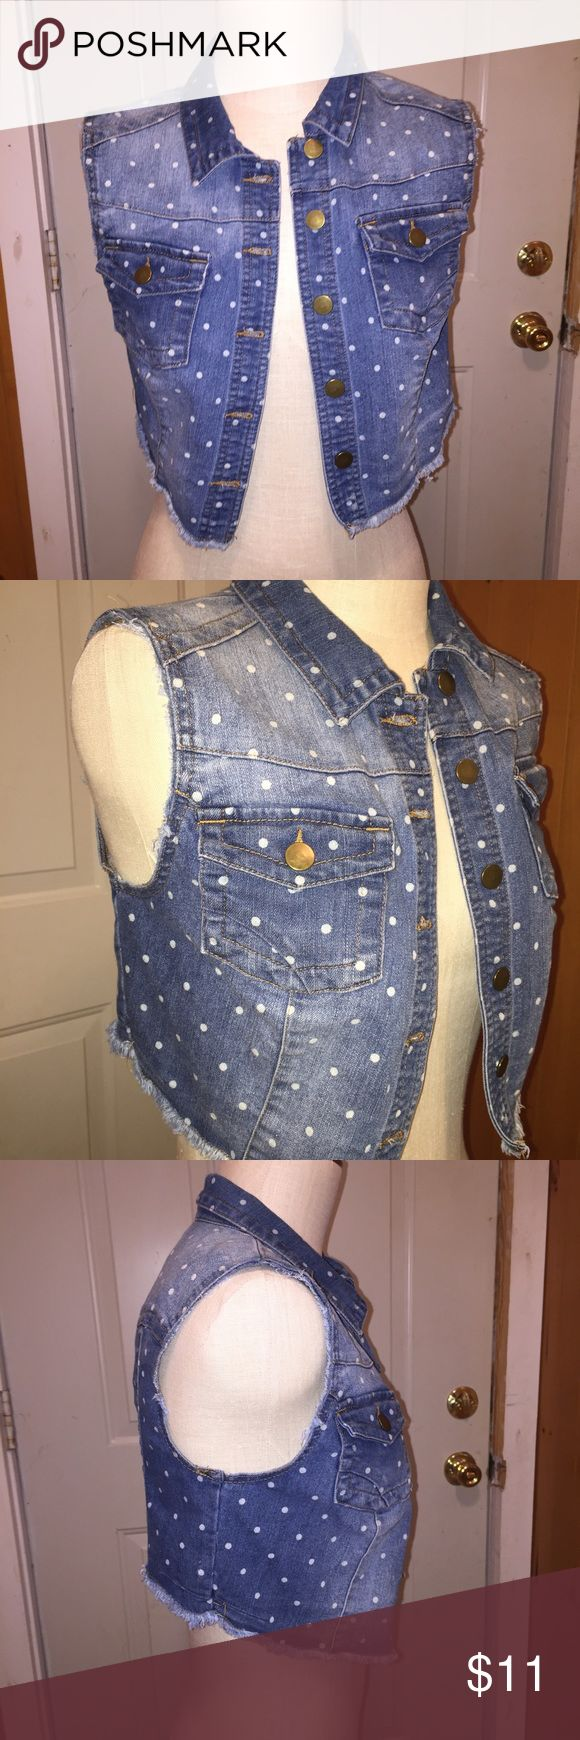 White Polka Dot Jean Vest Worn a few times, but I never liked the Polka dots, so I am selling. Feel free to ask any questions. No flaws. Jackets & Coats Vests